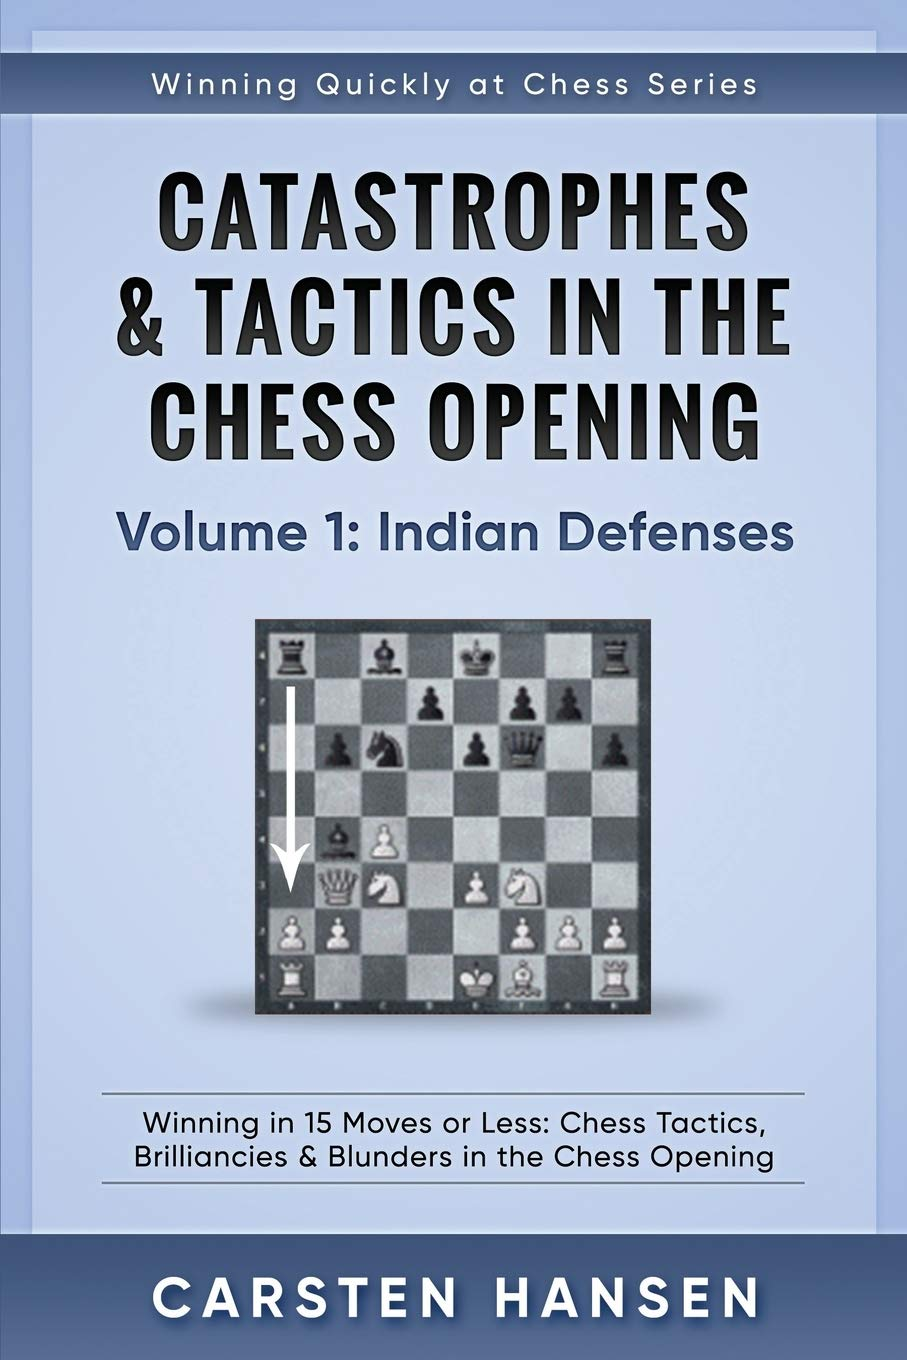 Catastrophes And Tactics In The Chess Opening   Volume 1  Indian Defenses  Winning In 15 Moves Or Less  Chess Tactics Brilliancies And Blunders In The ...  Winning Quickly At Chess Series Band 1